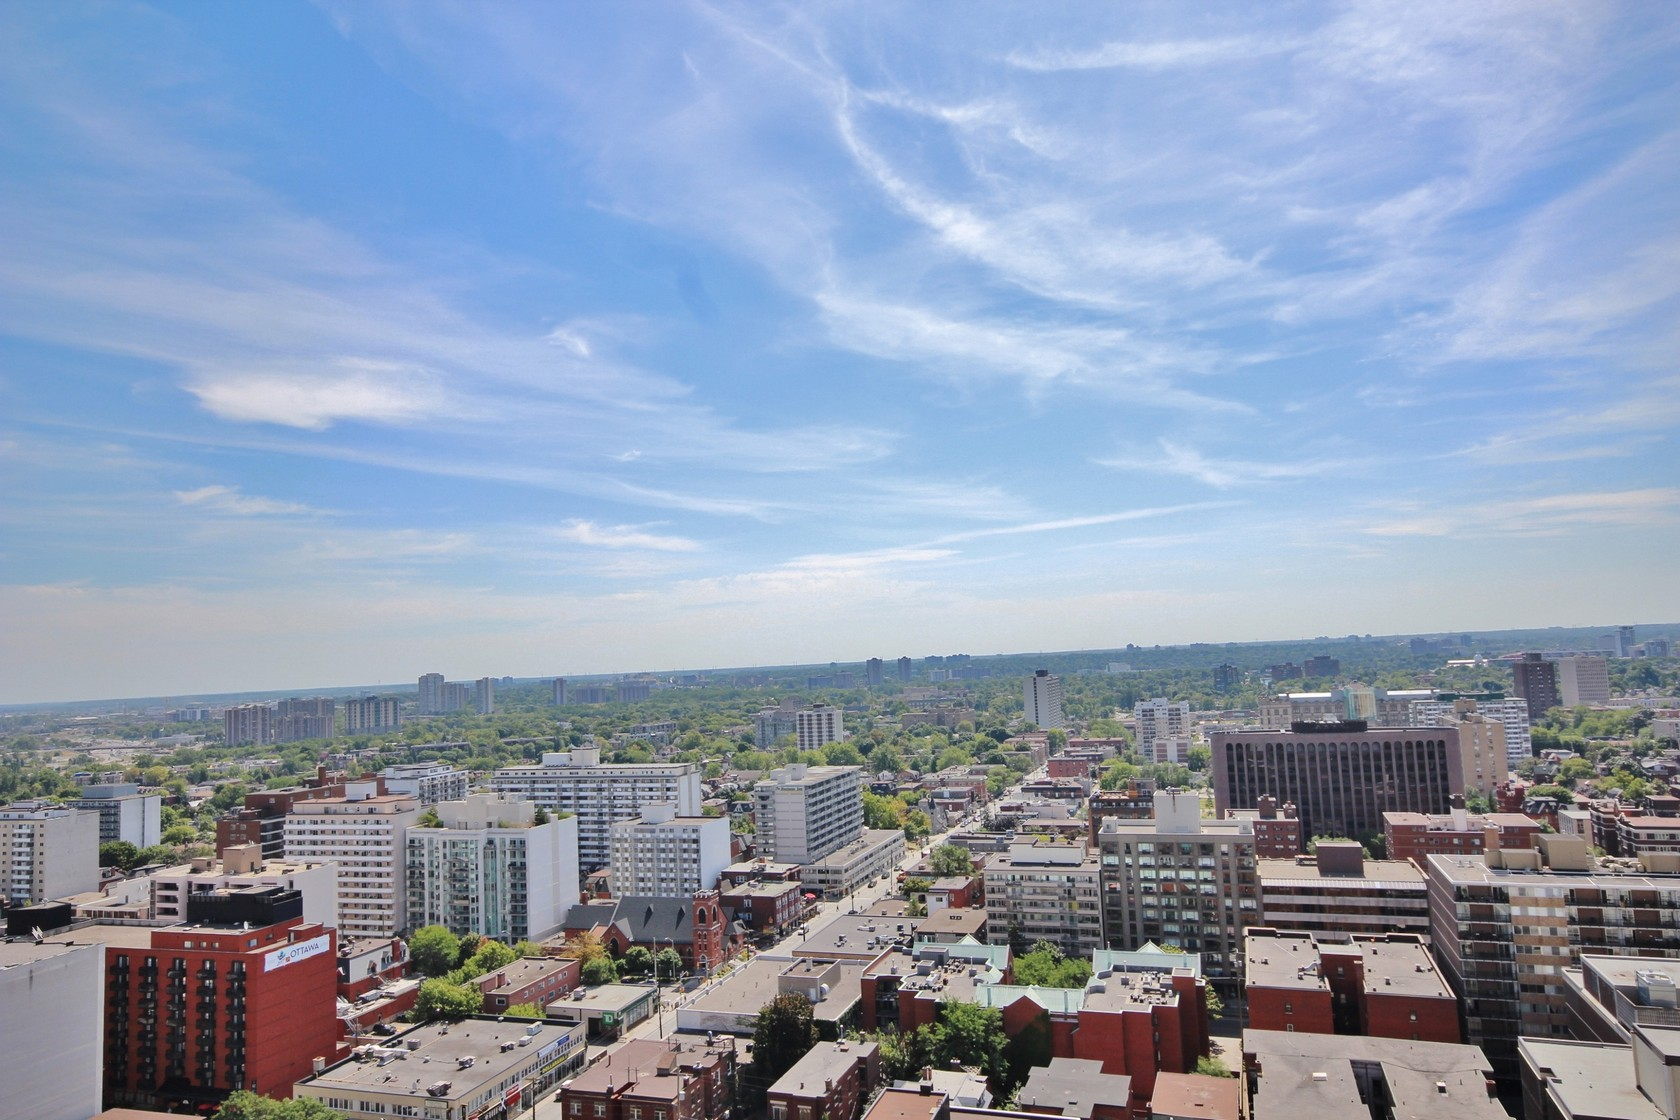 Sold 40 Nepean St Unit 2306 Modern Condo For Sale In